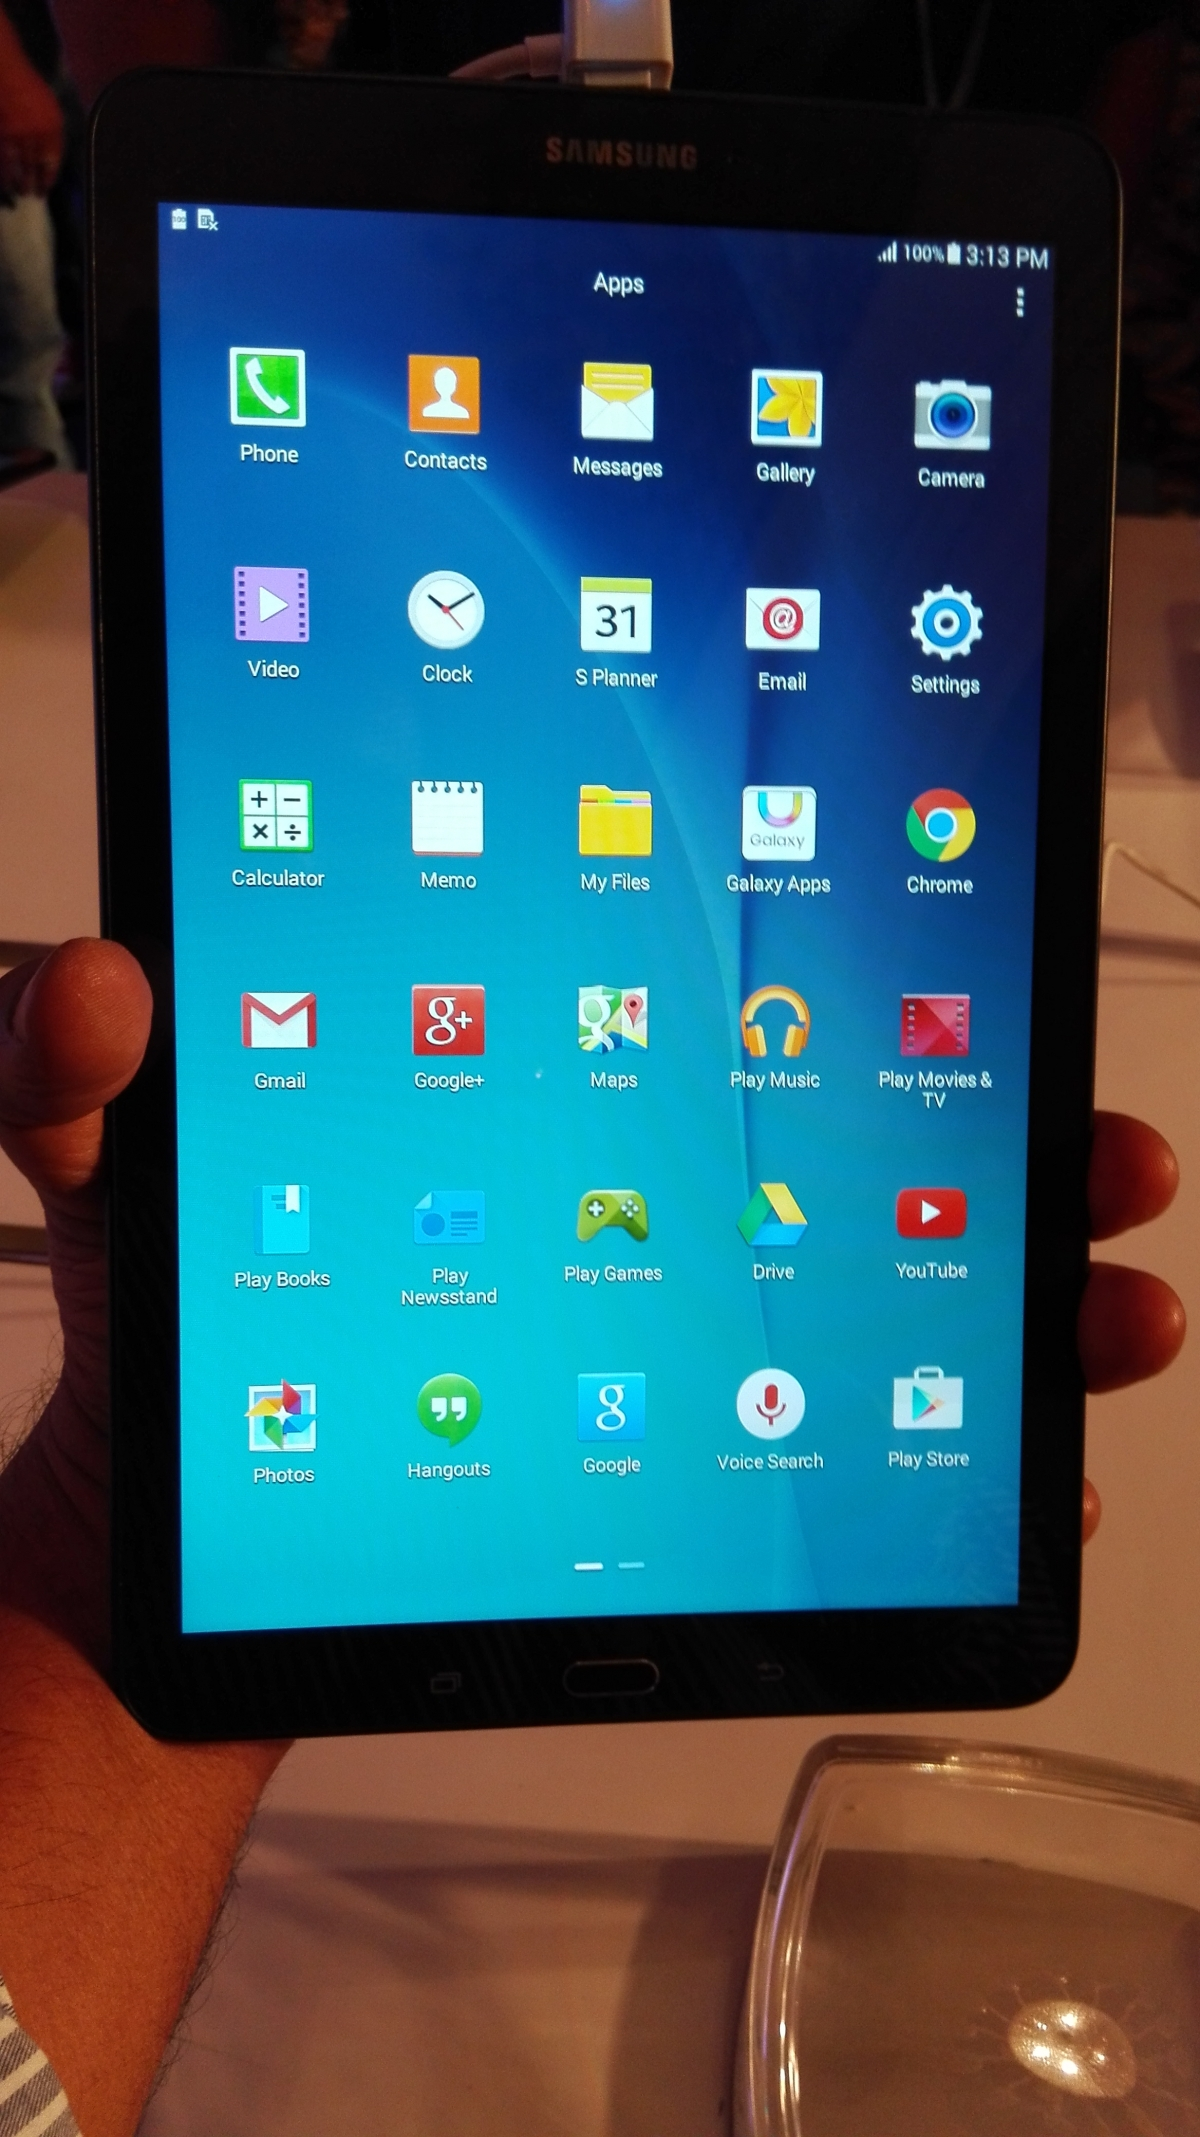 Samsung Galaxy Tab A, Tab E Hands-on Review - IBTimes India